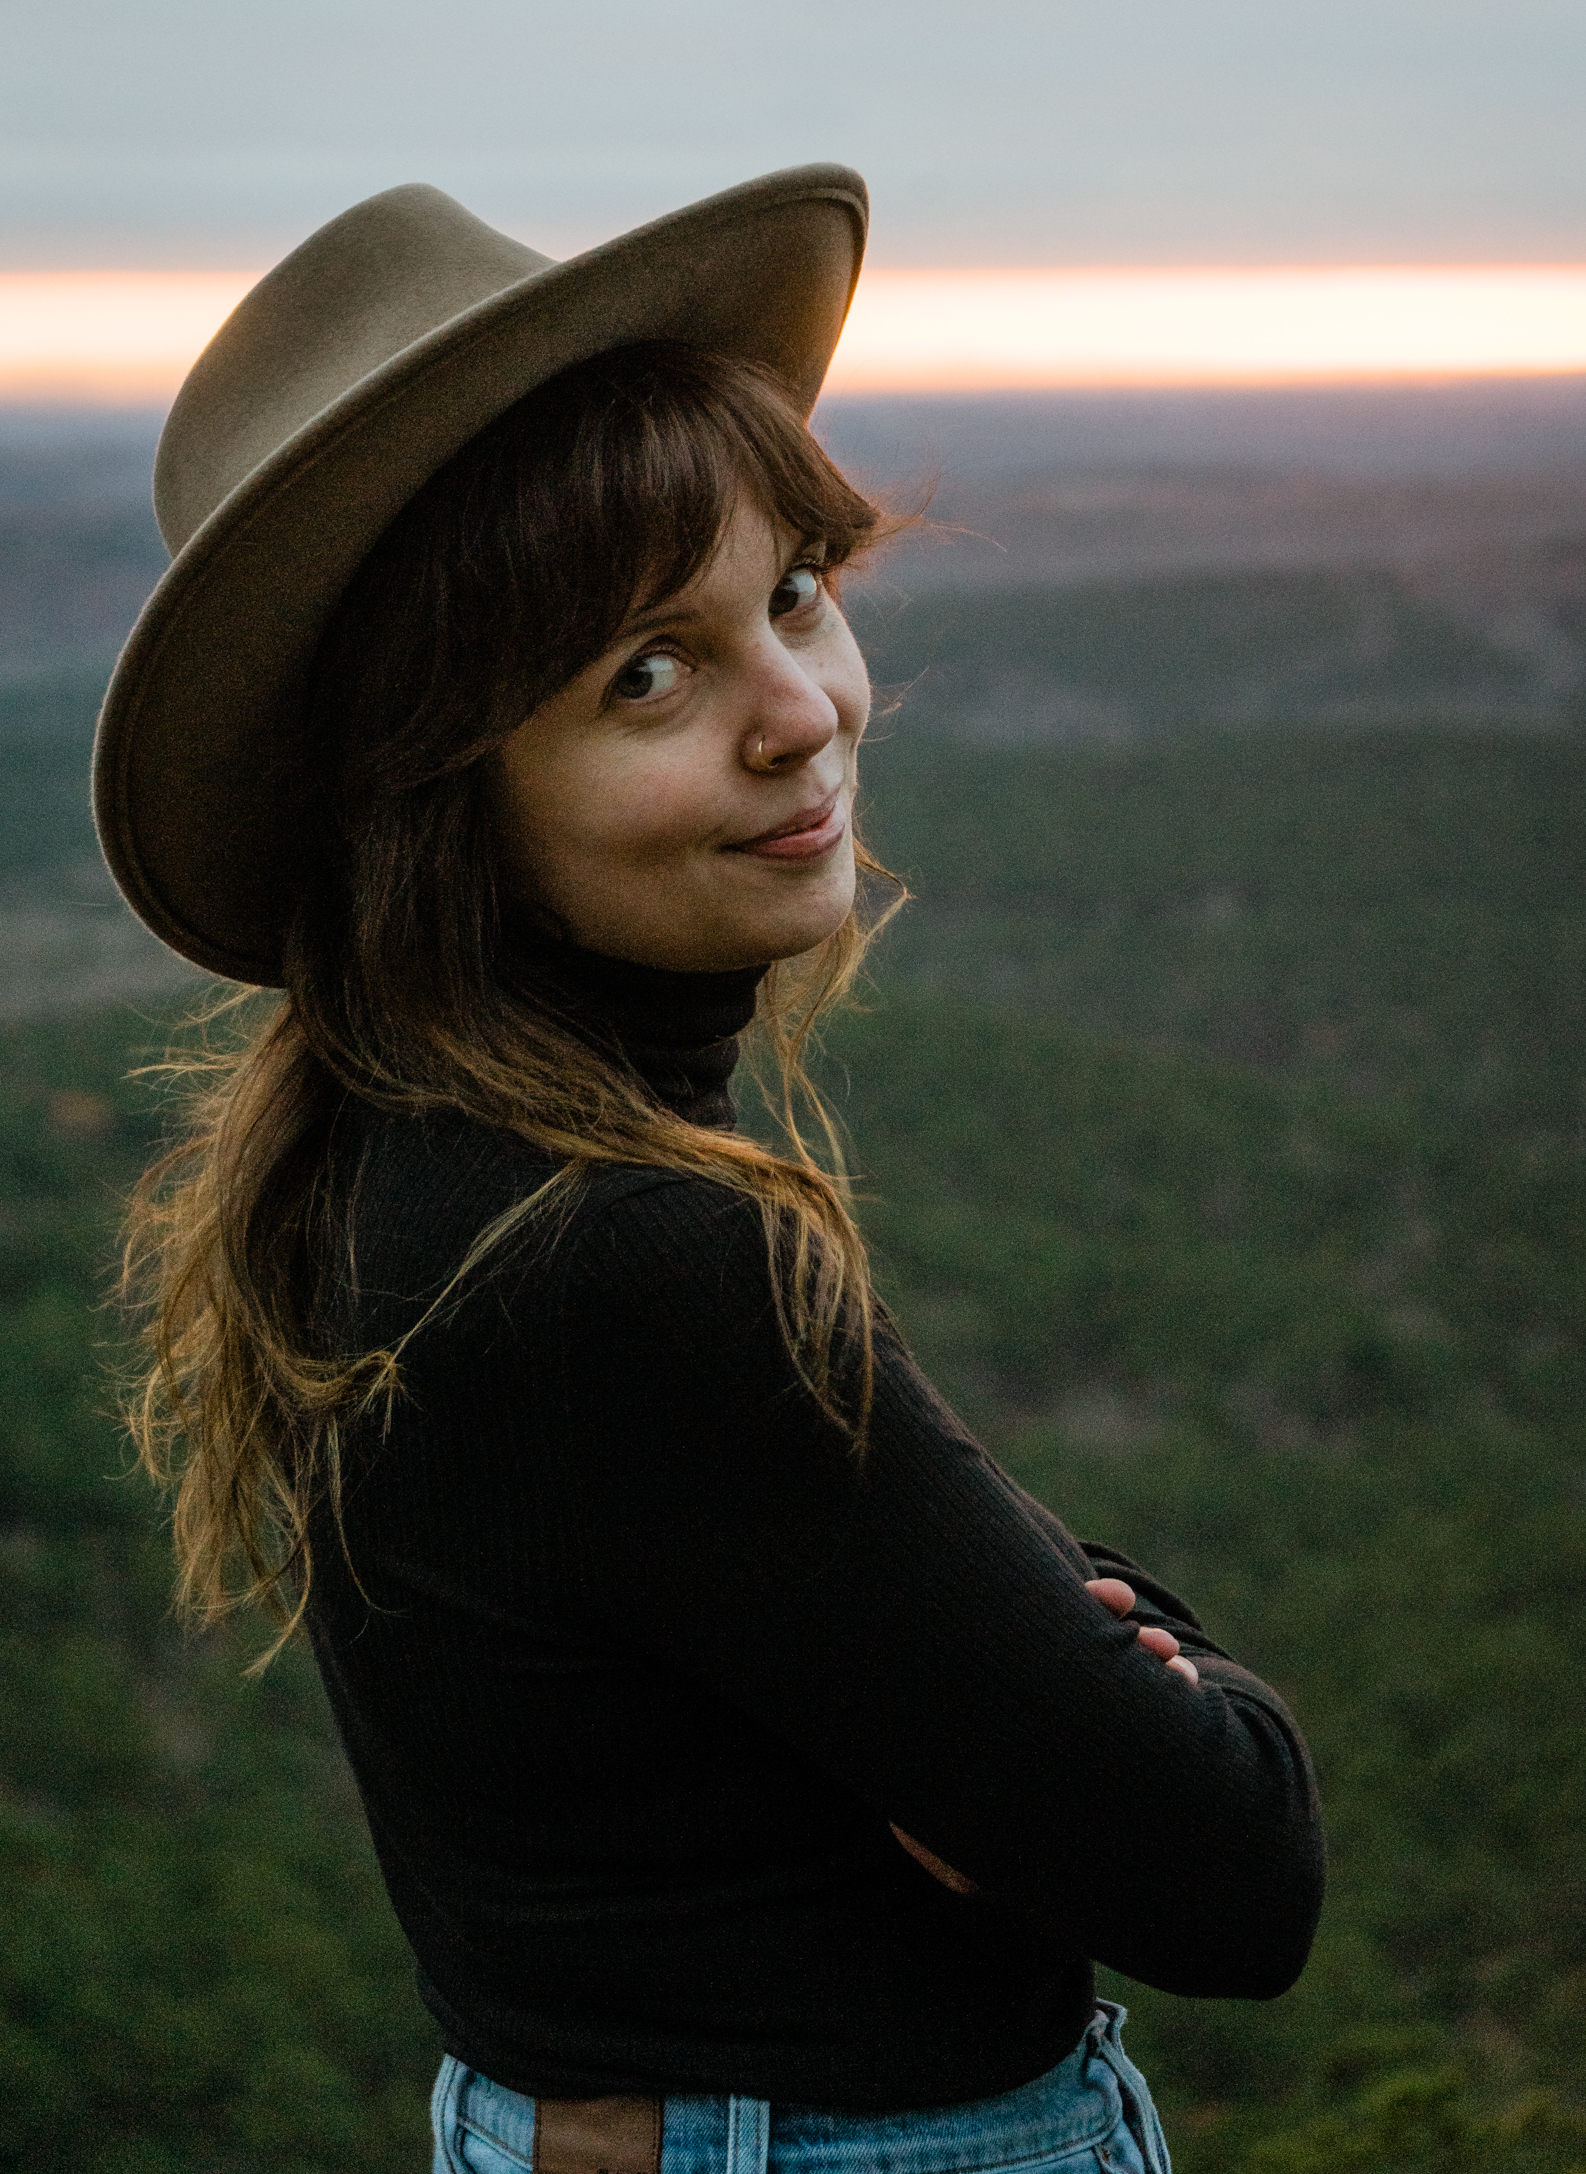 A woman in a cowboy hat with folded arms smiling and looking back at the camera